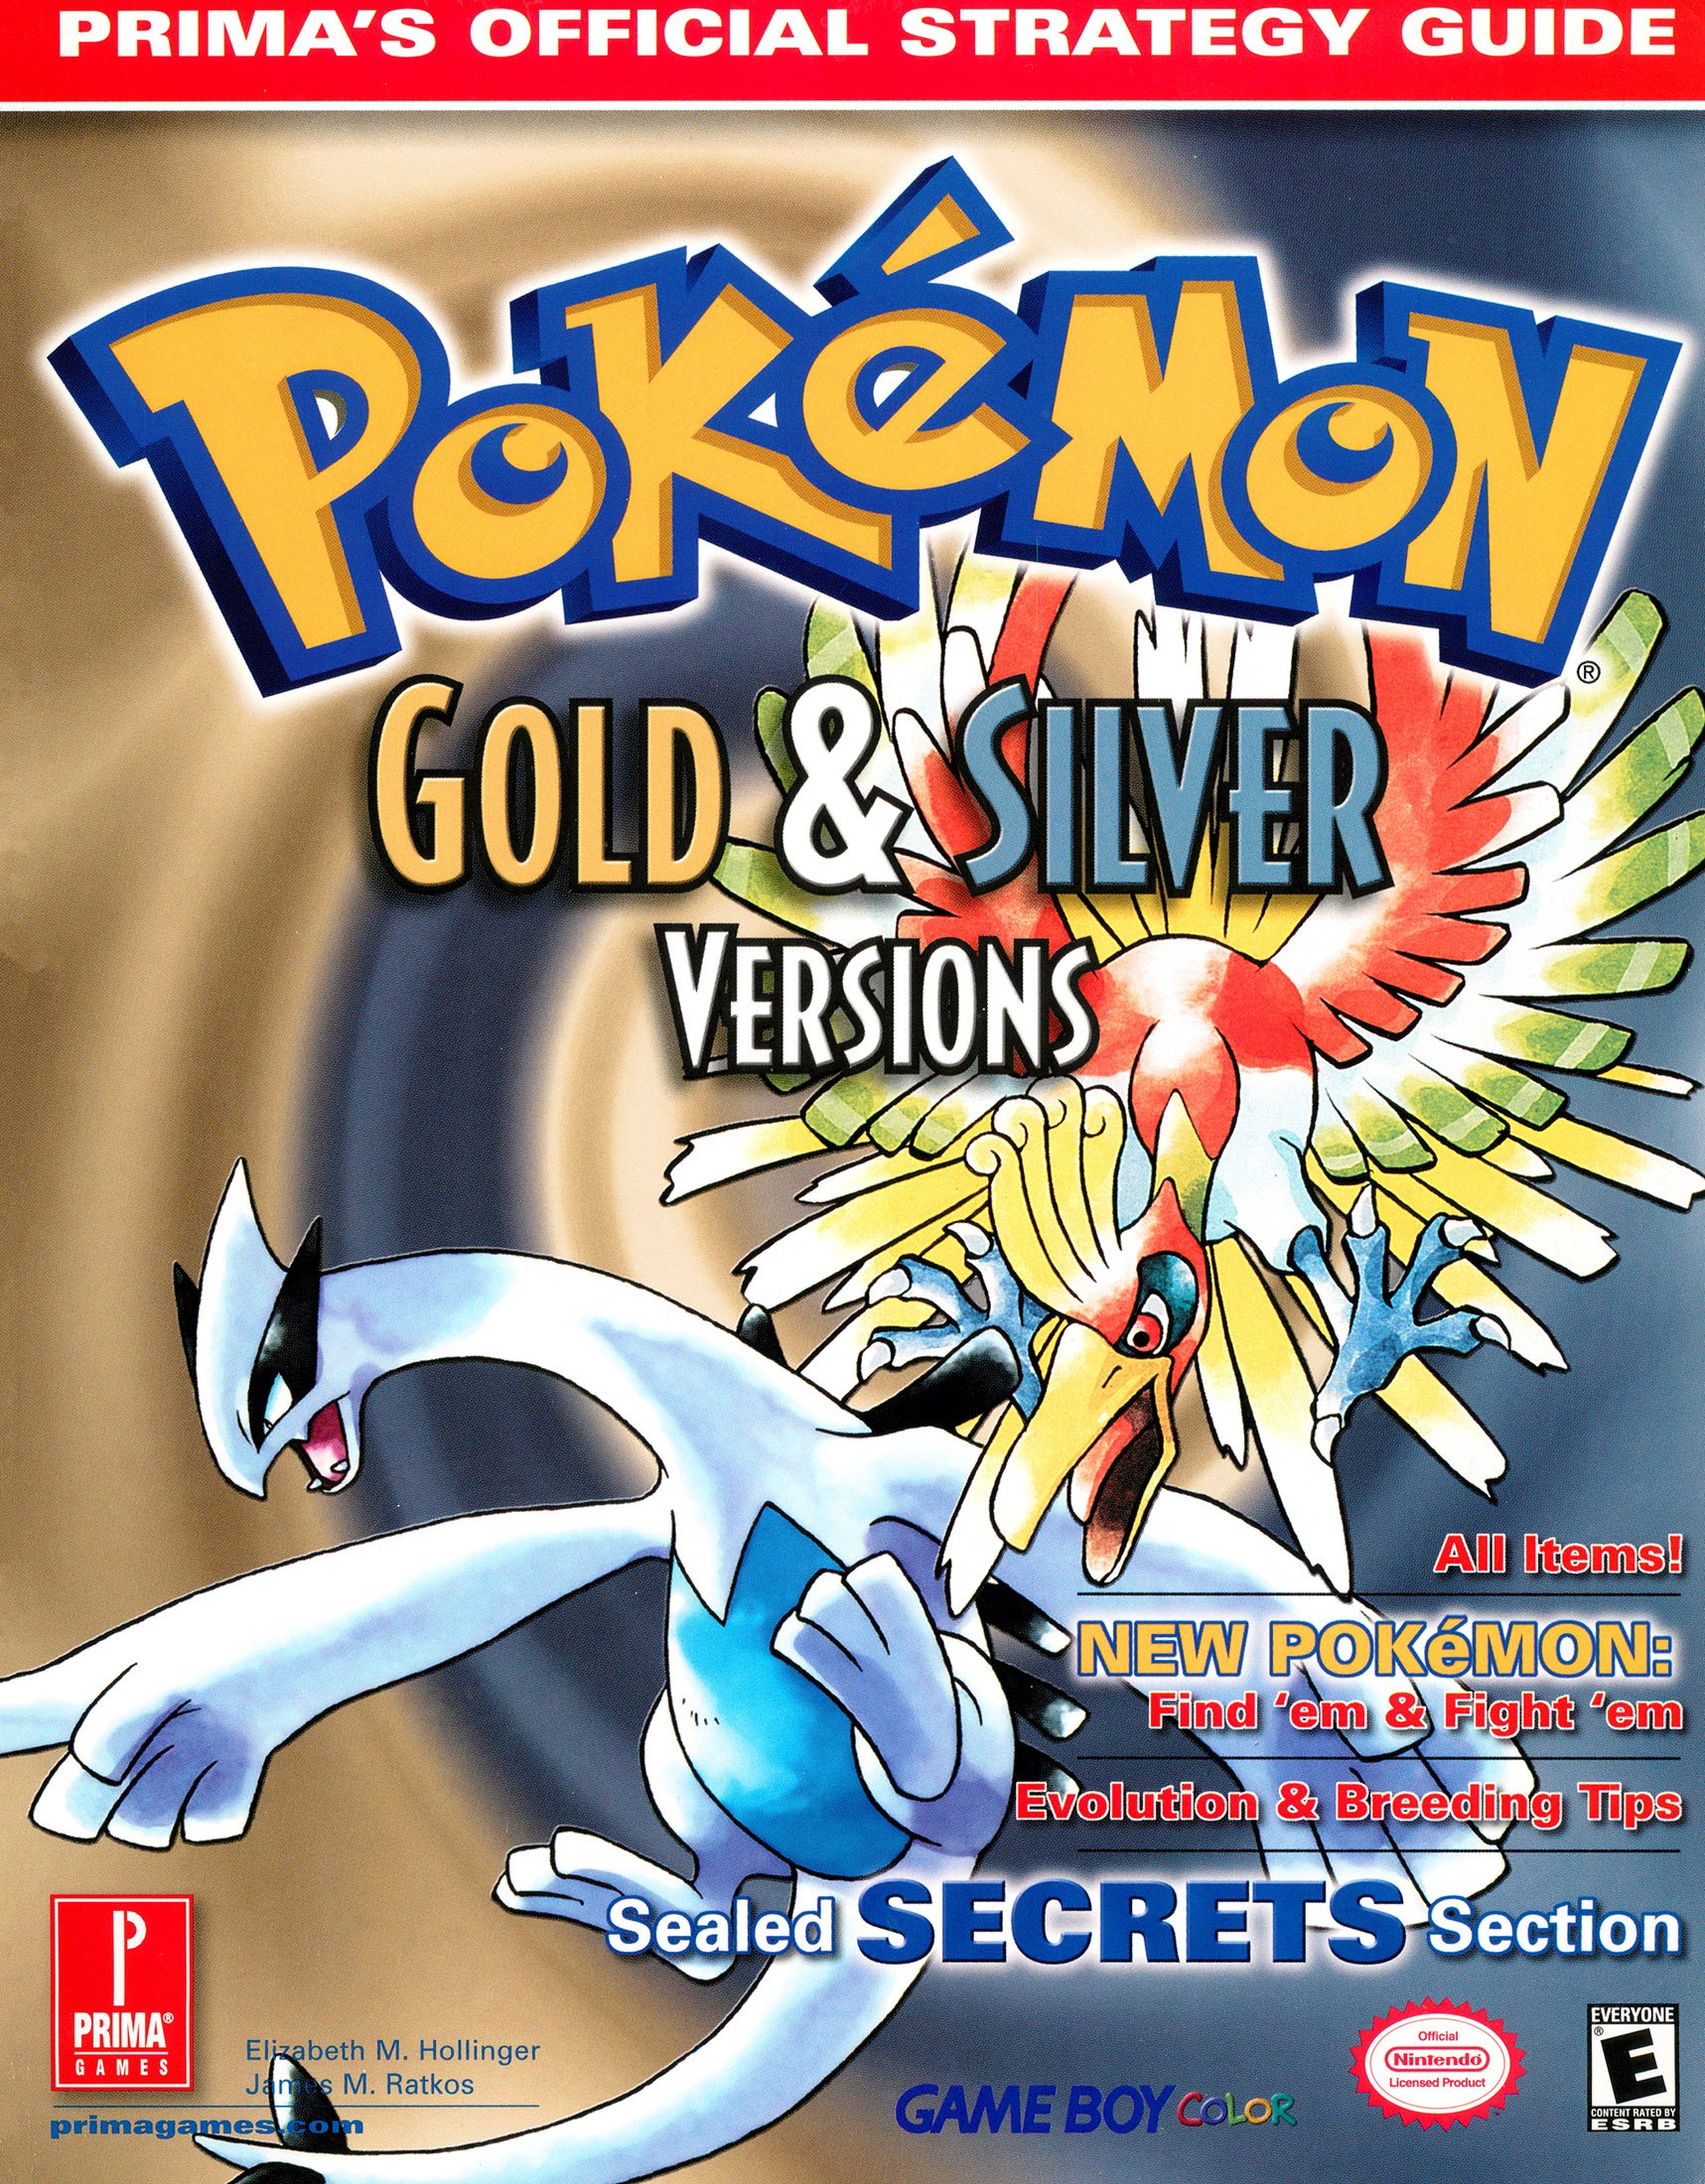 Pokémon Gold & Silver Versions - Prima's Official Strategy Guide